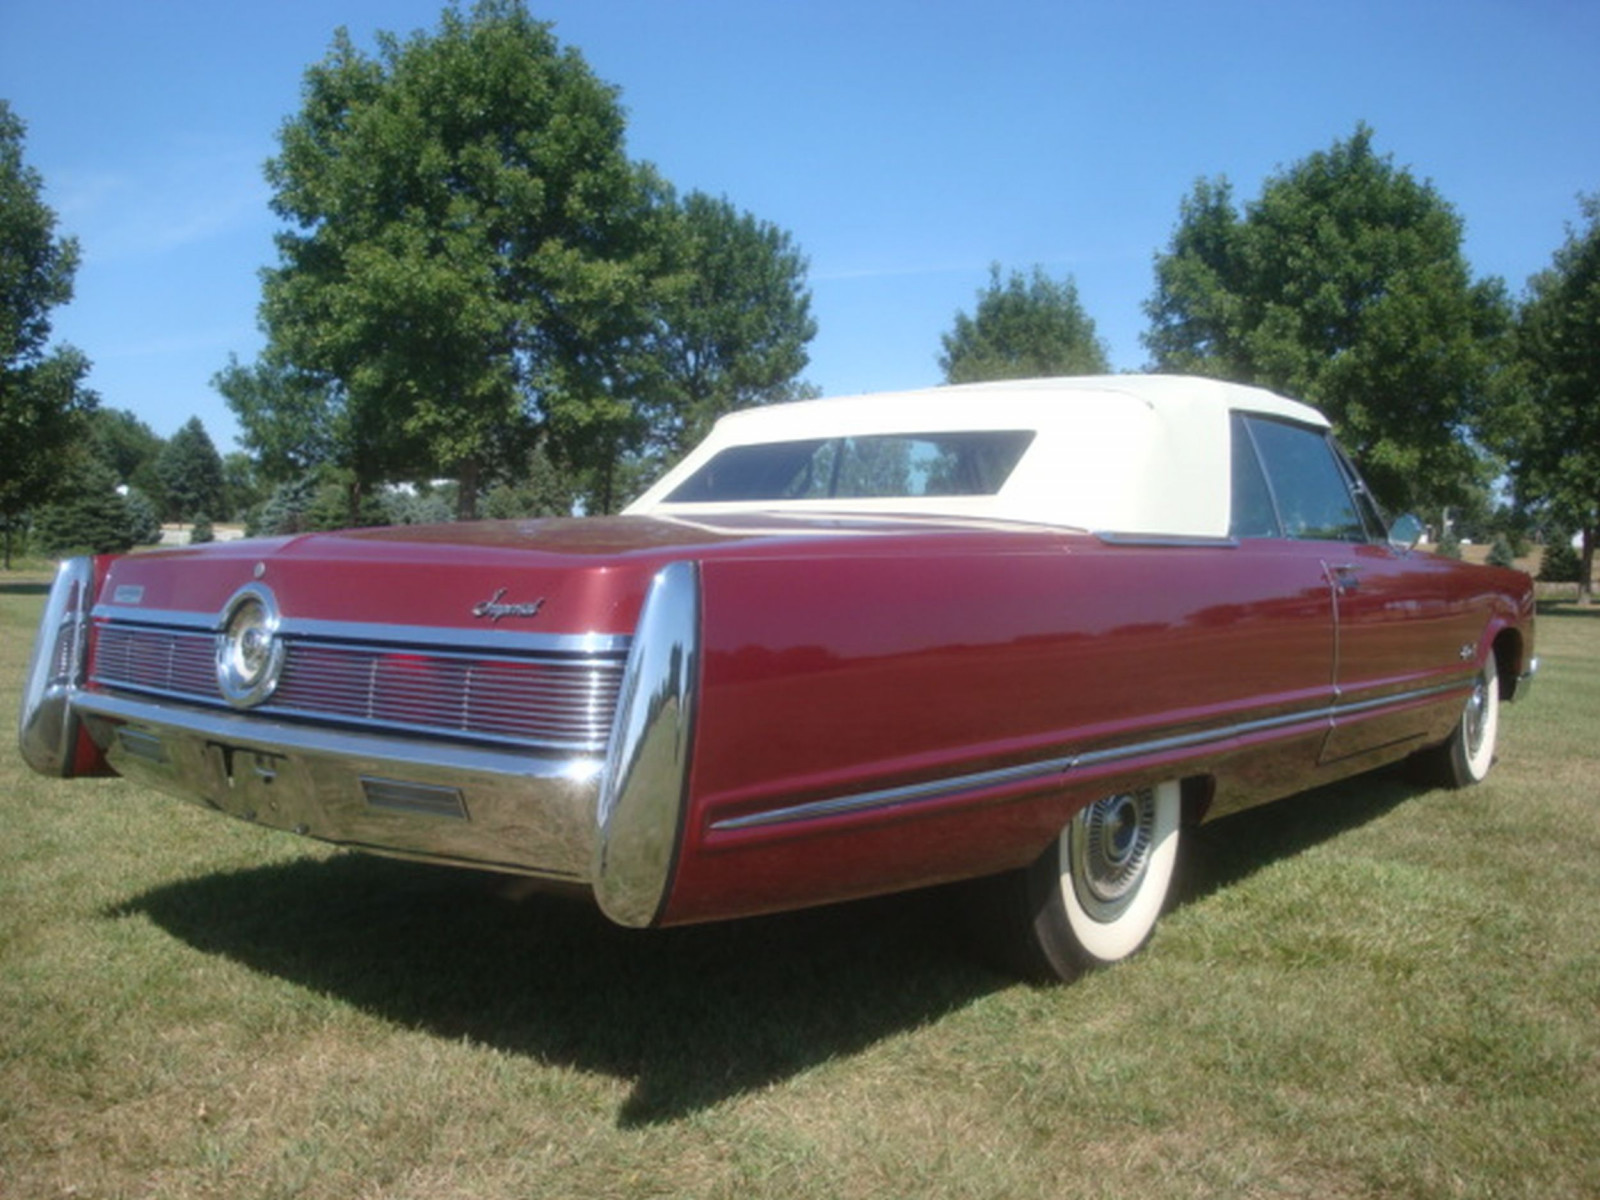 1967 Chrysler Imperial Convertible - Image 13